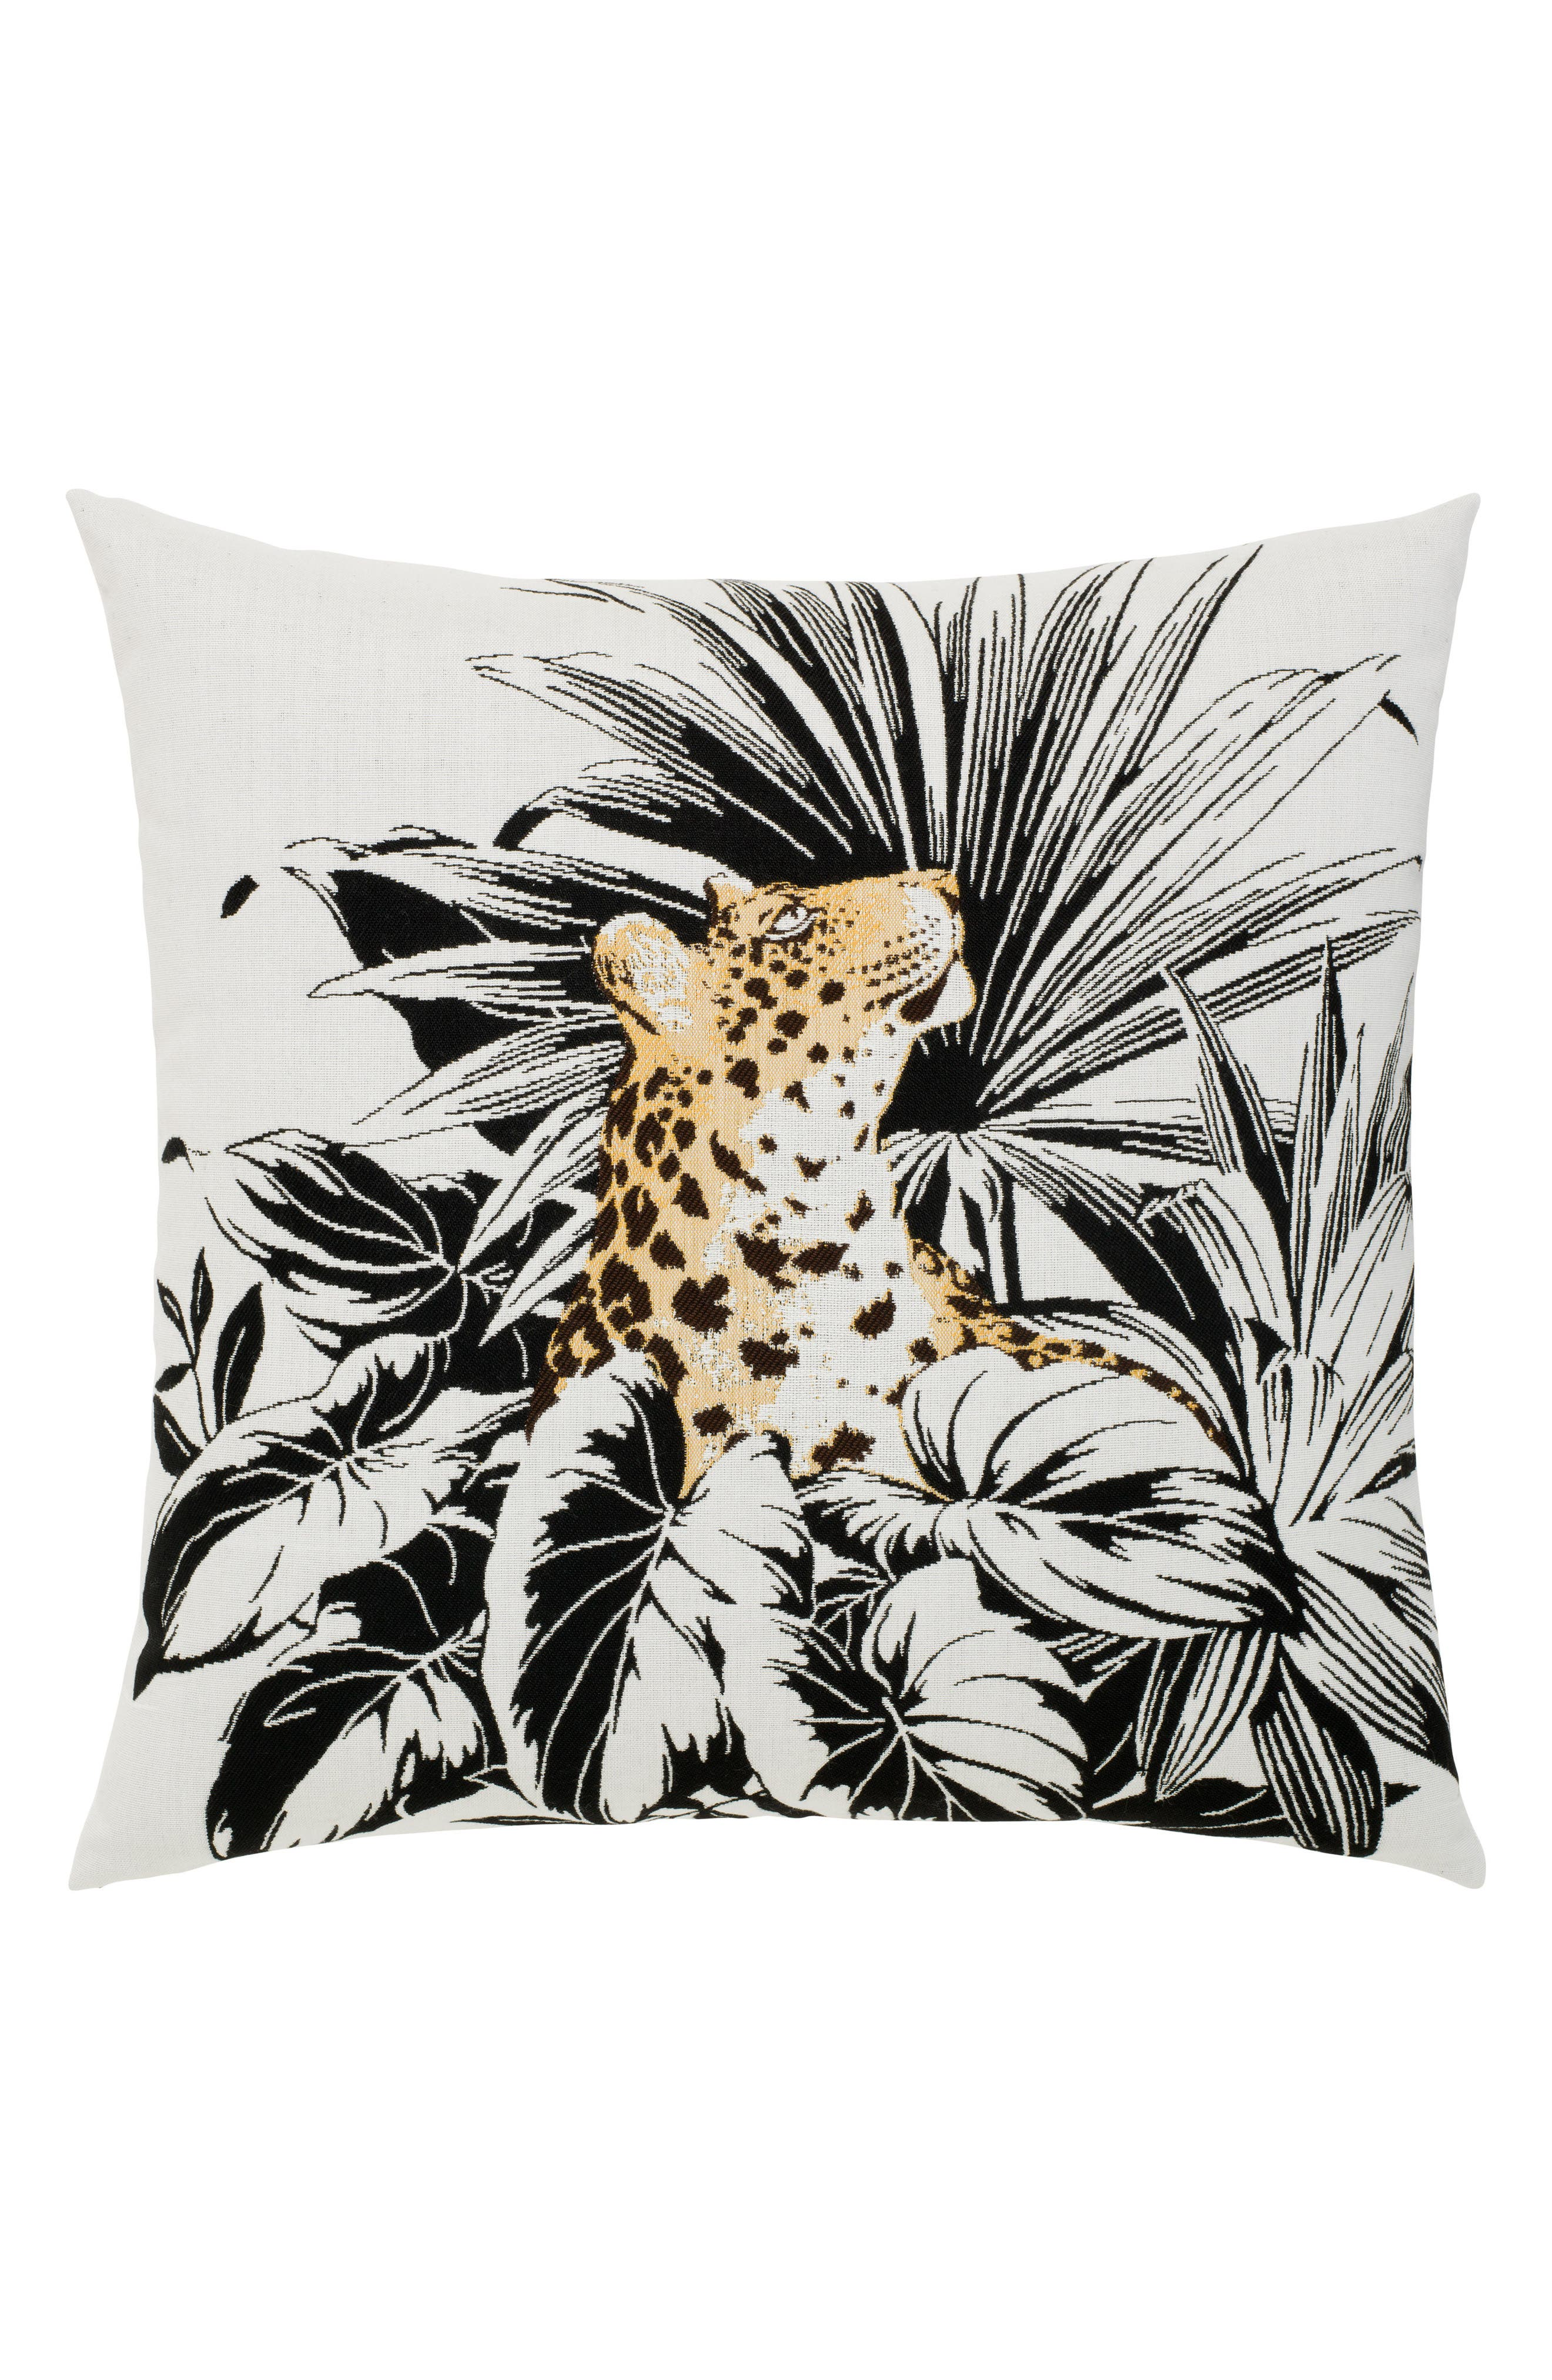 Jungle Leopard Indoor/Outdoor Accent Pillow,                             Main thumbnail 1, color,                             Black/ White